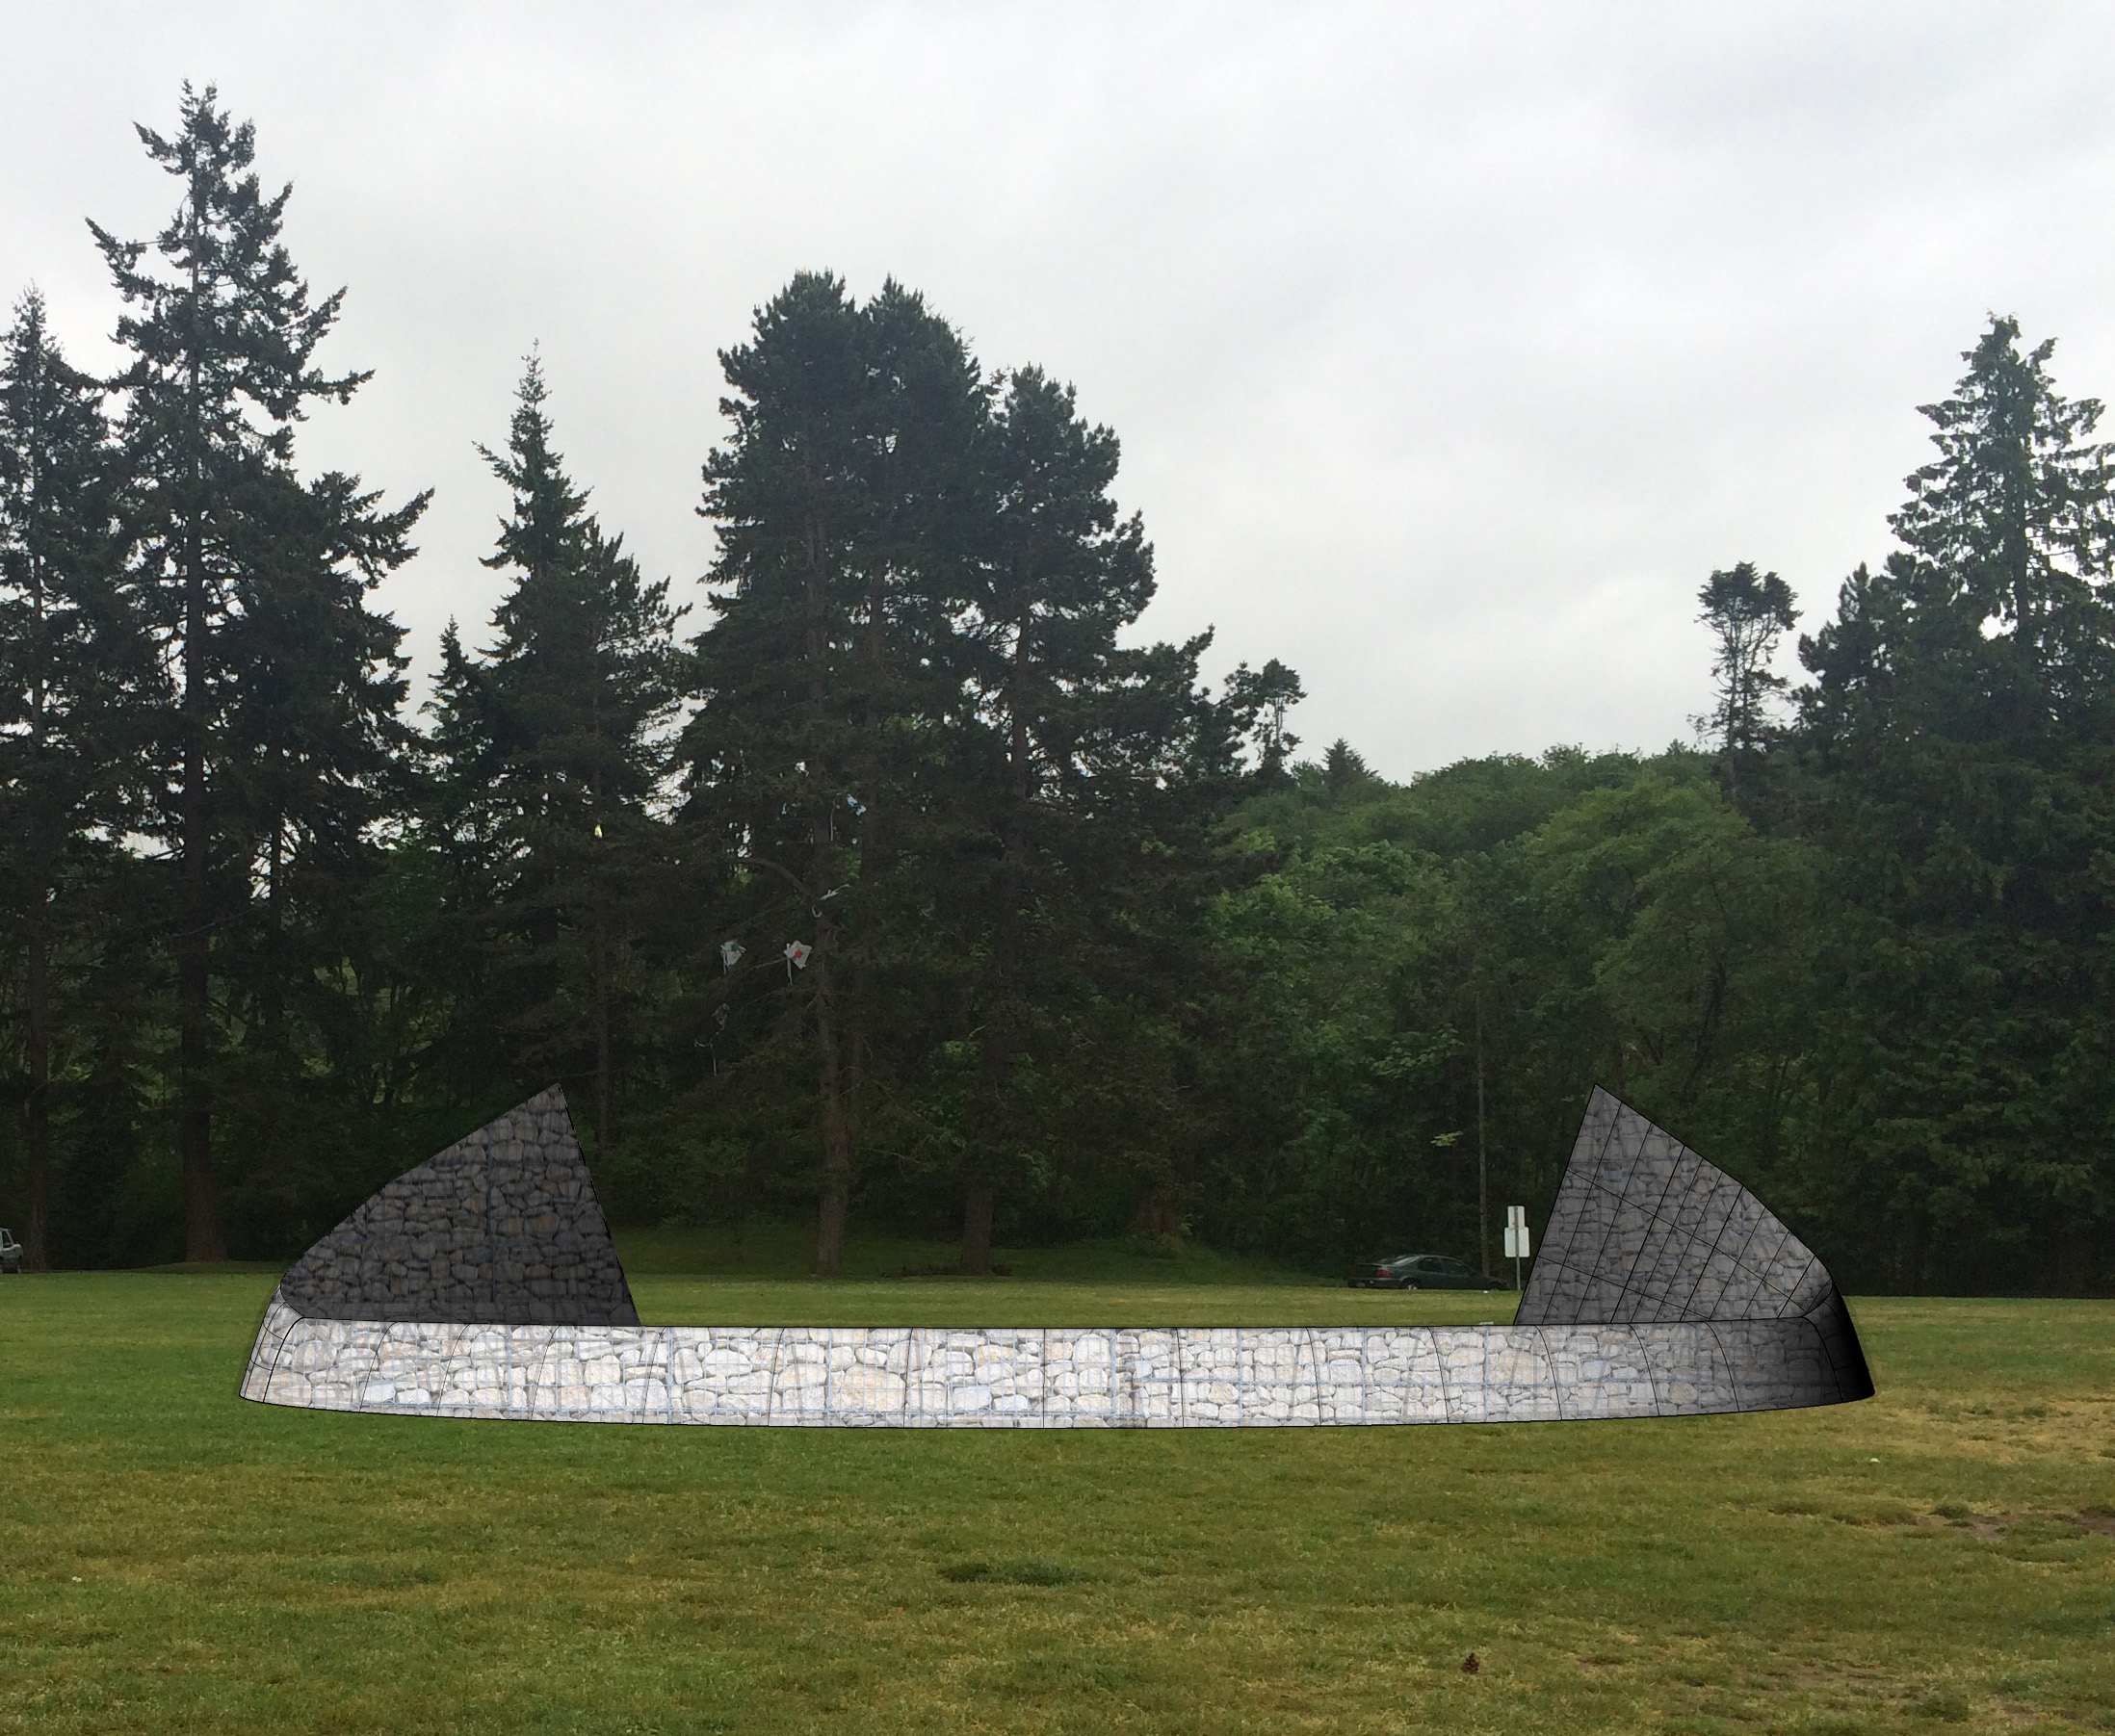 The base form for the Gabion Sculpture and Land Art develops.